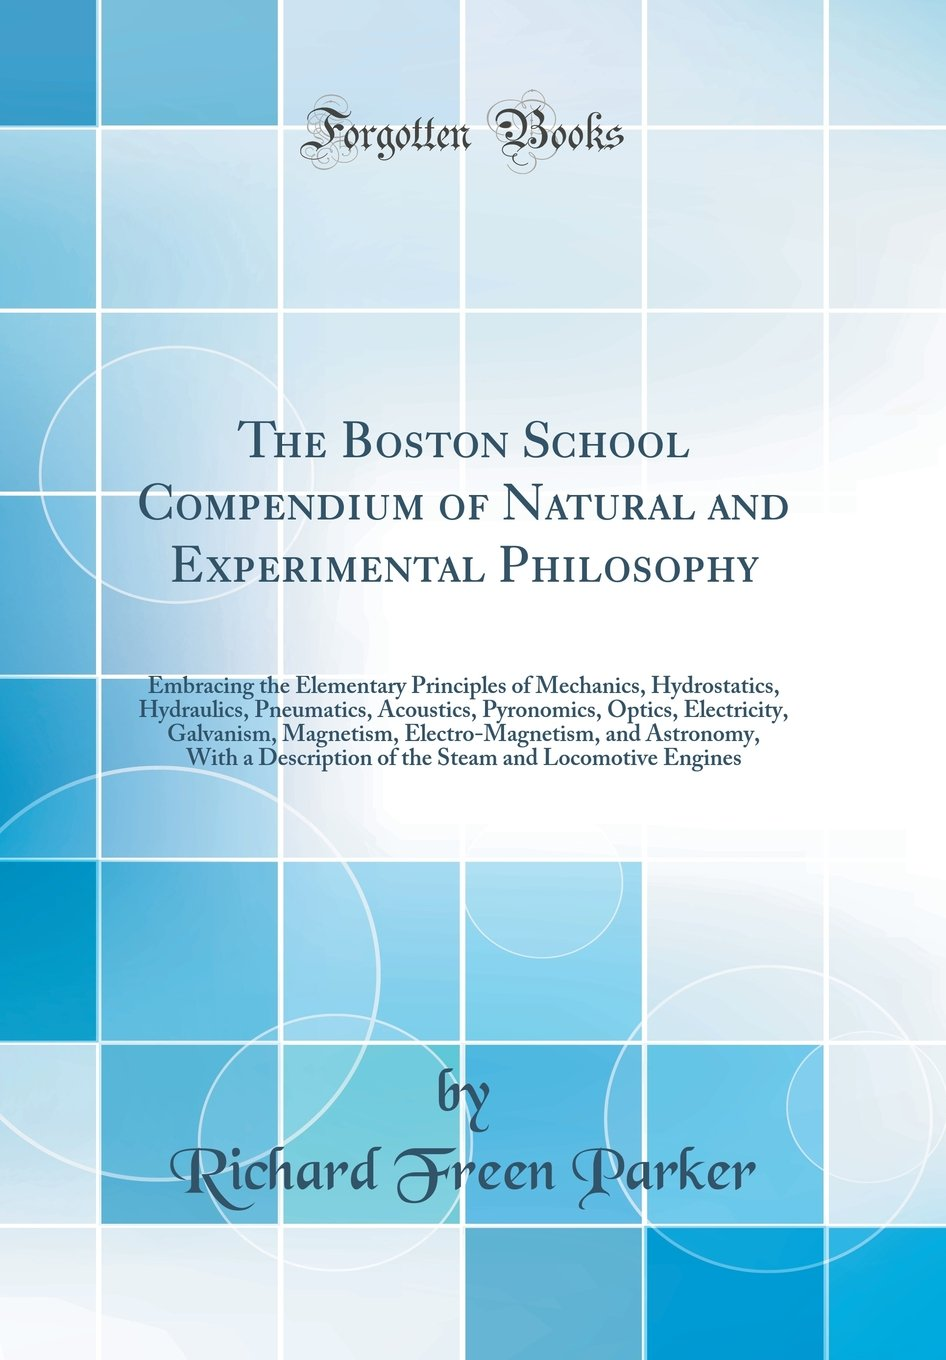 The Boston School Compendium of Natural and Experimental Philosophy: Embracing the Elementary Principles of Mechanics, Hydrostatics, Hydraulics, ... Magnetism, Electro-Magnetism, and Astronomy ebook